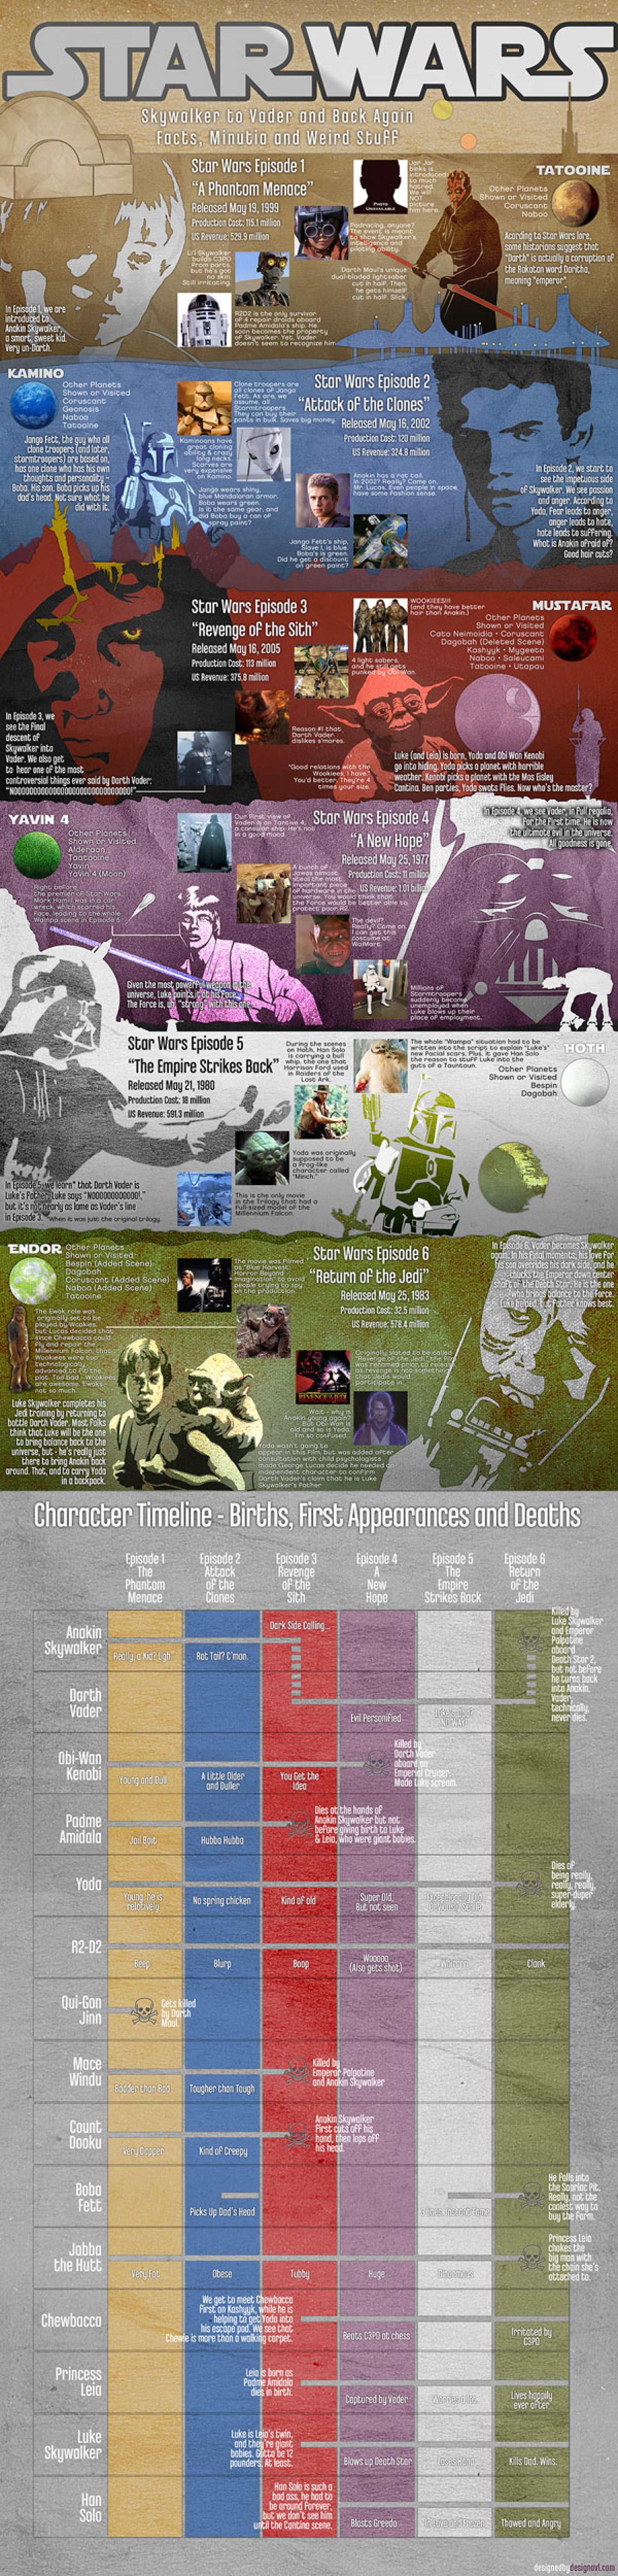 Star Wars Characters, Cast, History & Trivia Infographic